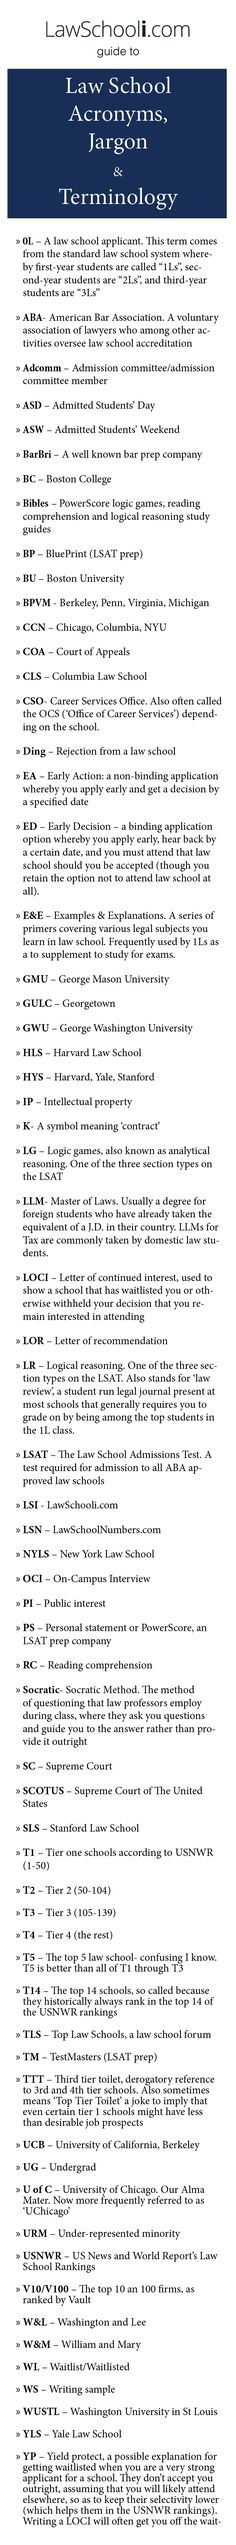 LawSchooli.com Guide to Law School Acronyms, Jargon  Terminology